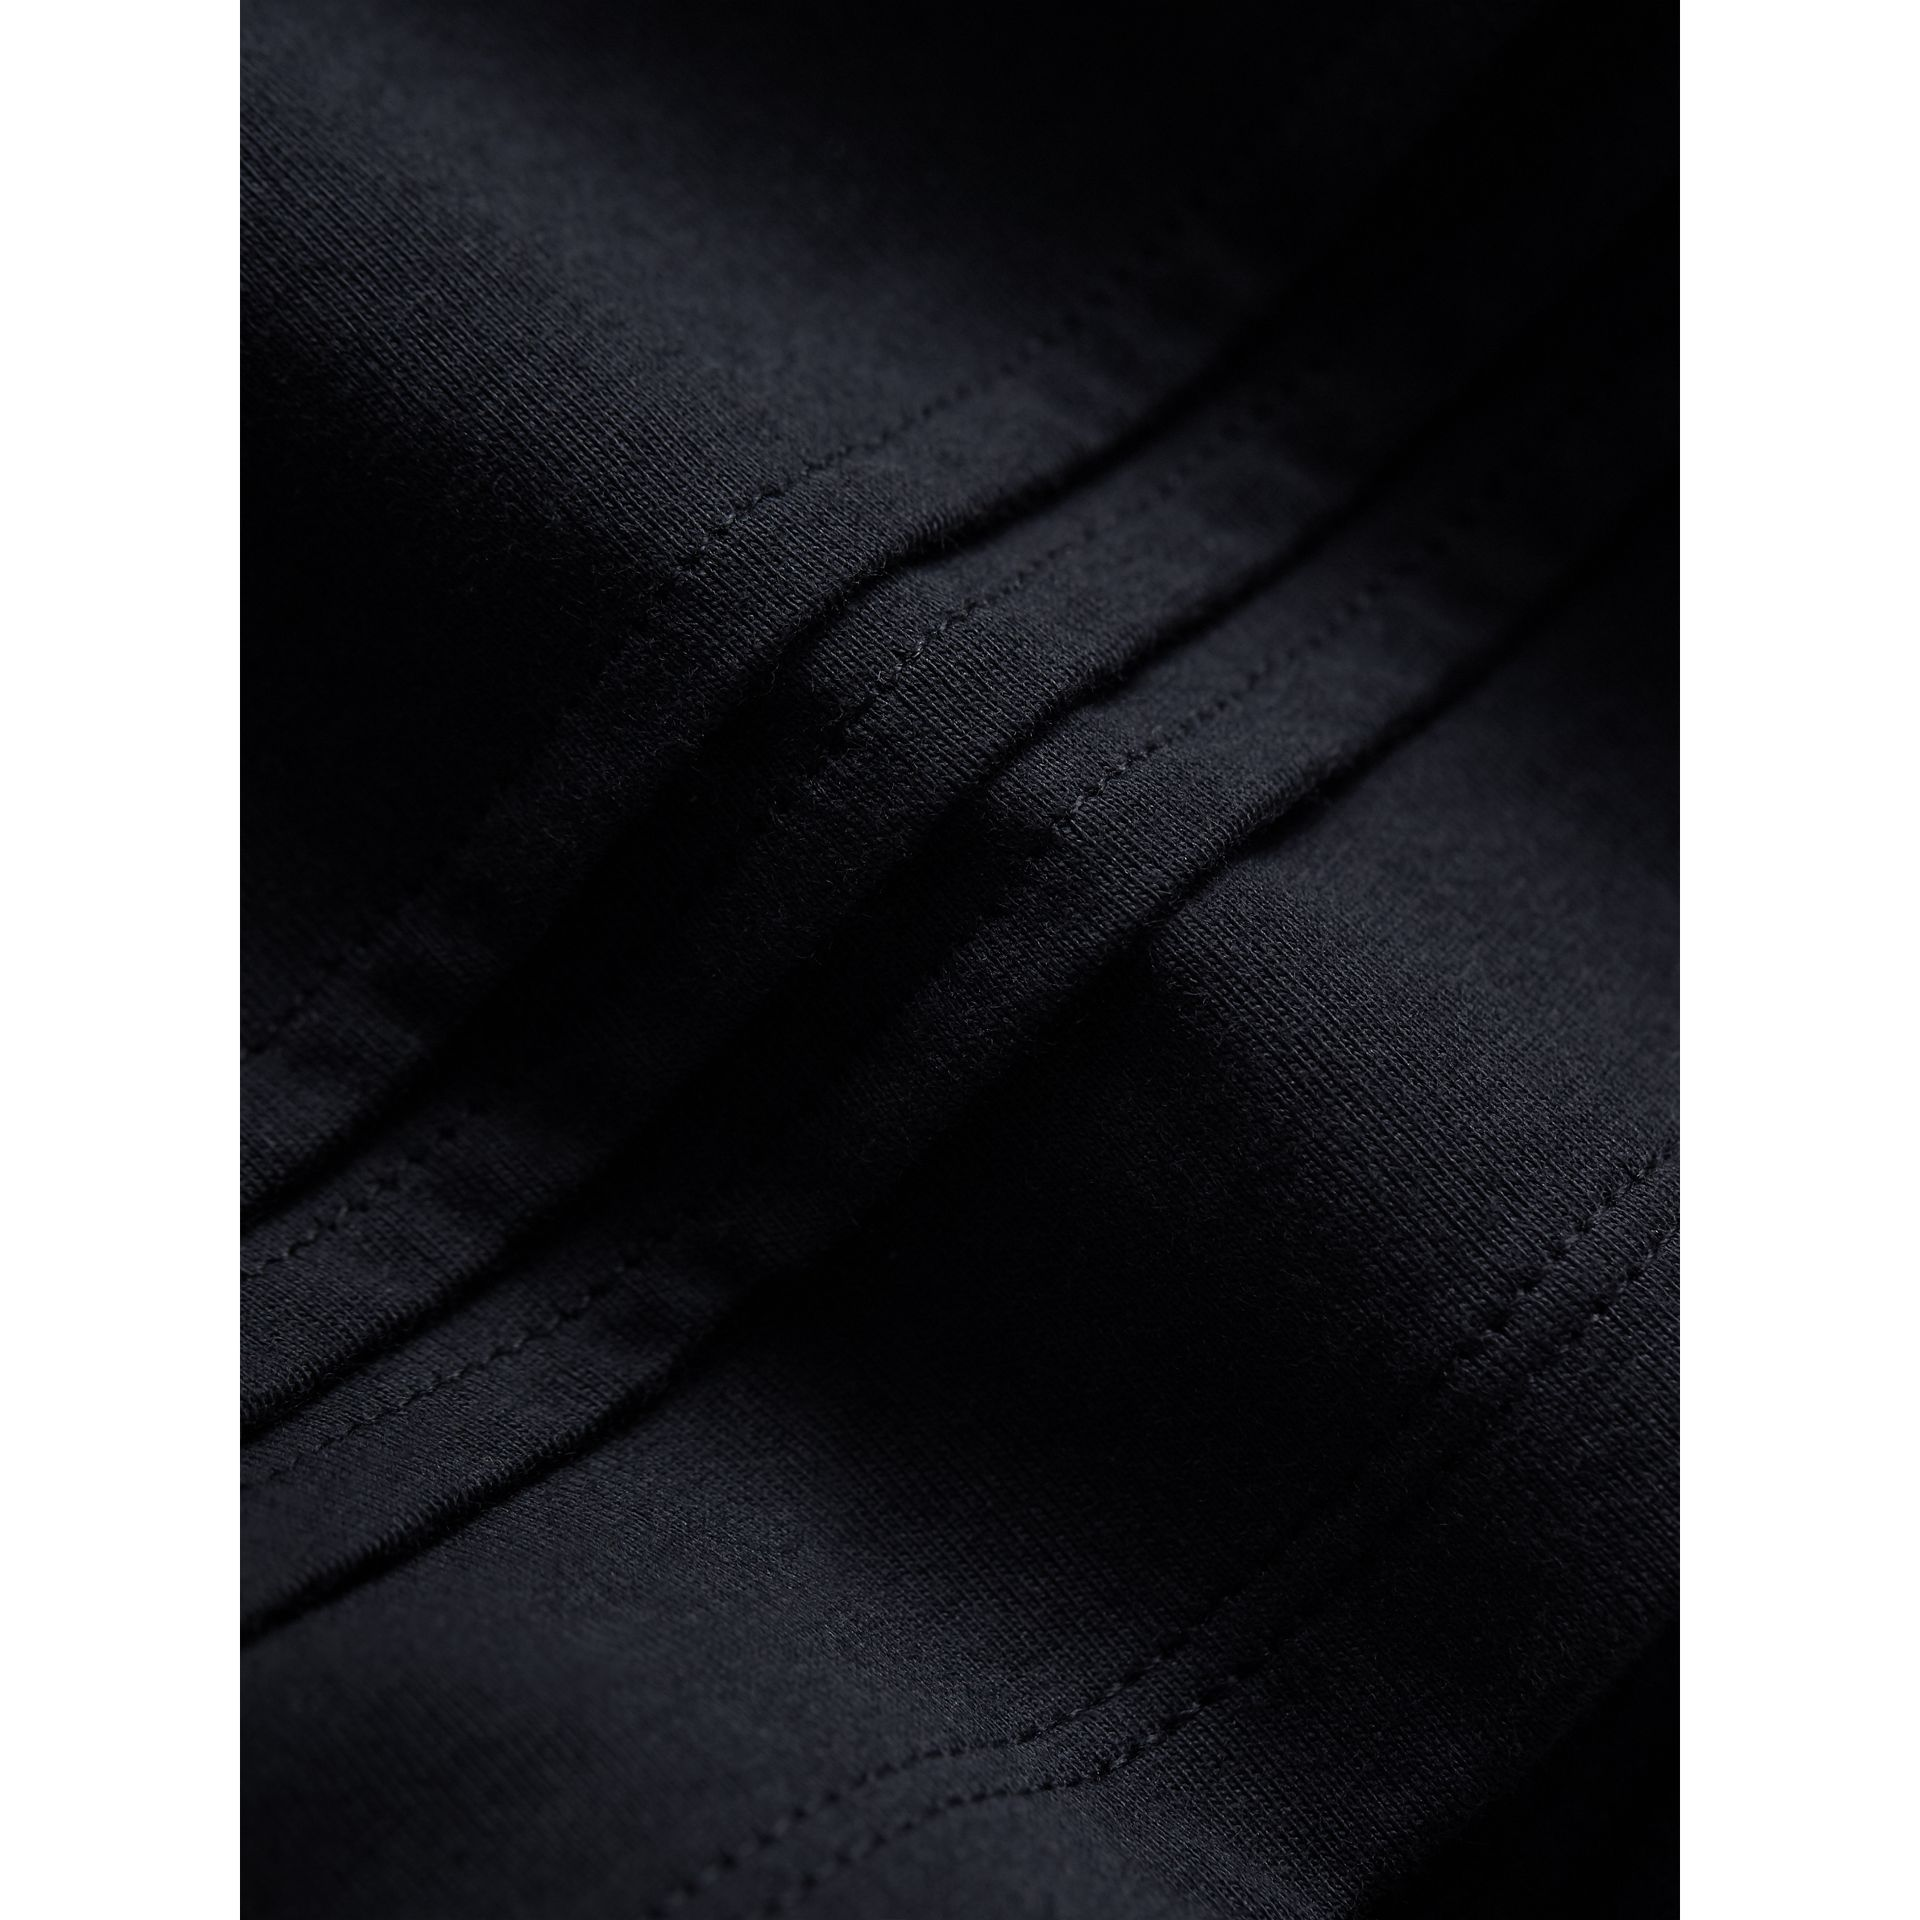 Pleat and Check Detail Cotton Top in Navy | Burberry - gallery image 2